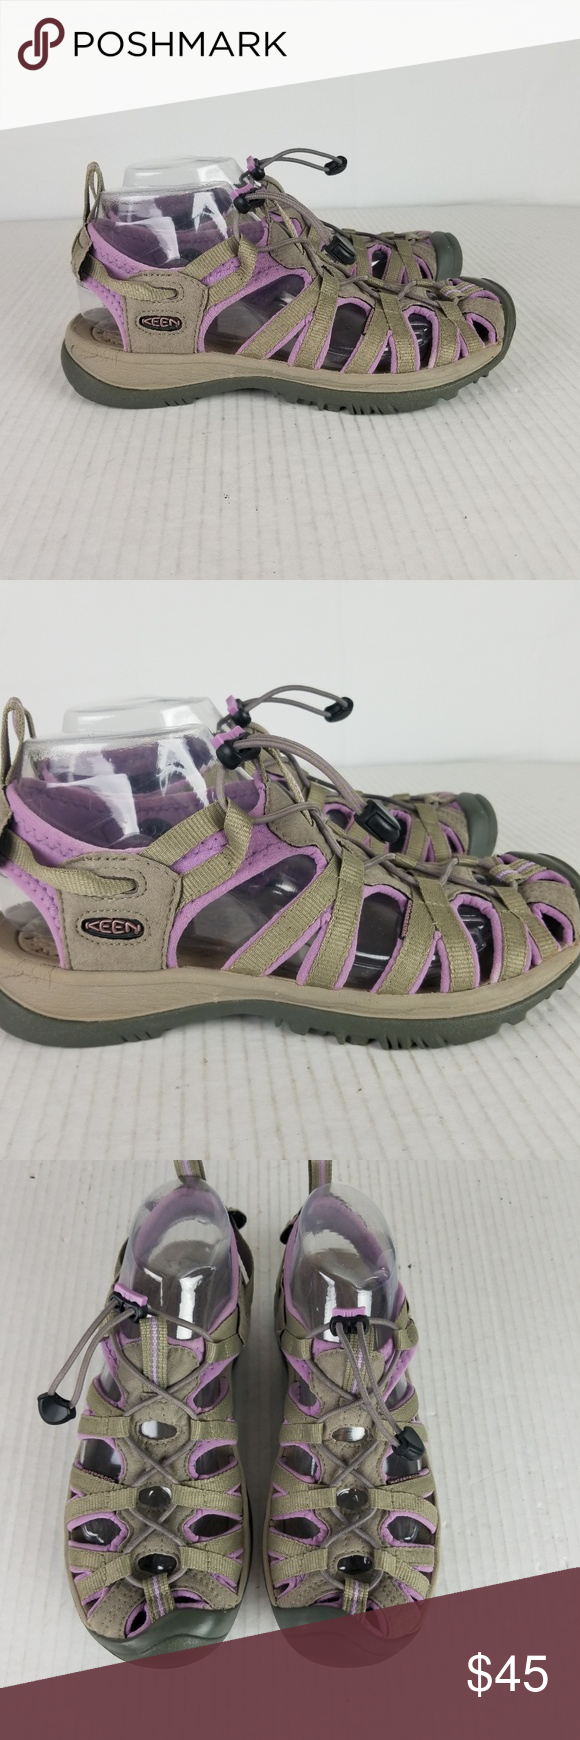 e24d52e22ff4 KEEN Whisper Womens sz 9 Gray   Lavender Waterproo KEEN Whisper Womens sz 9  Gray